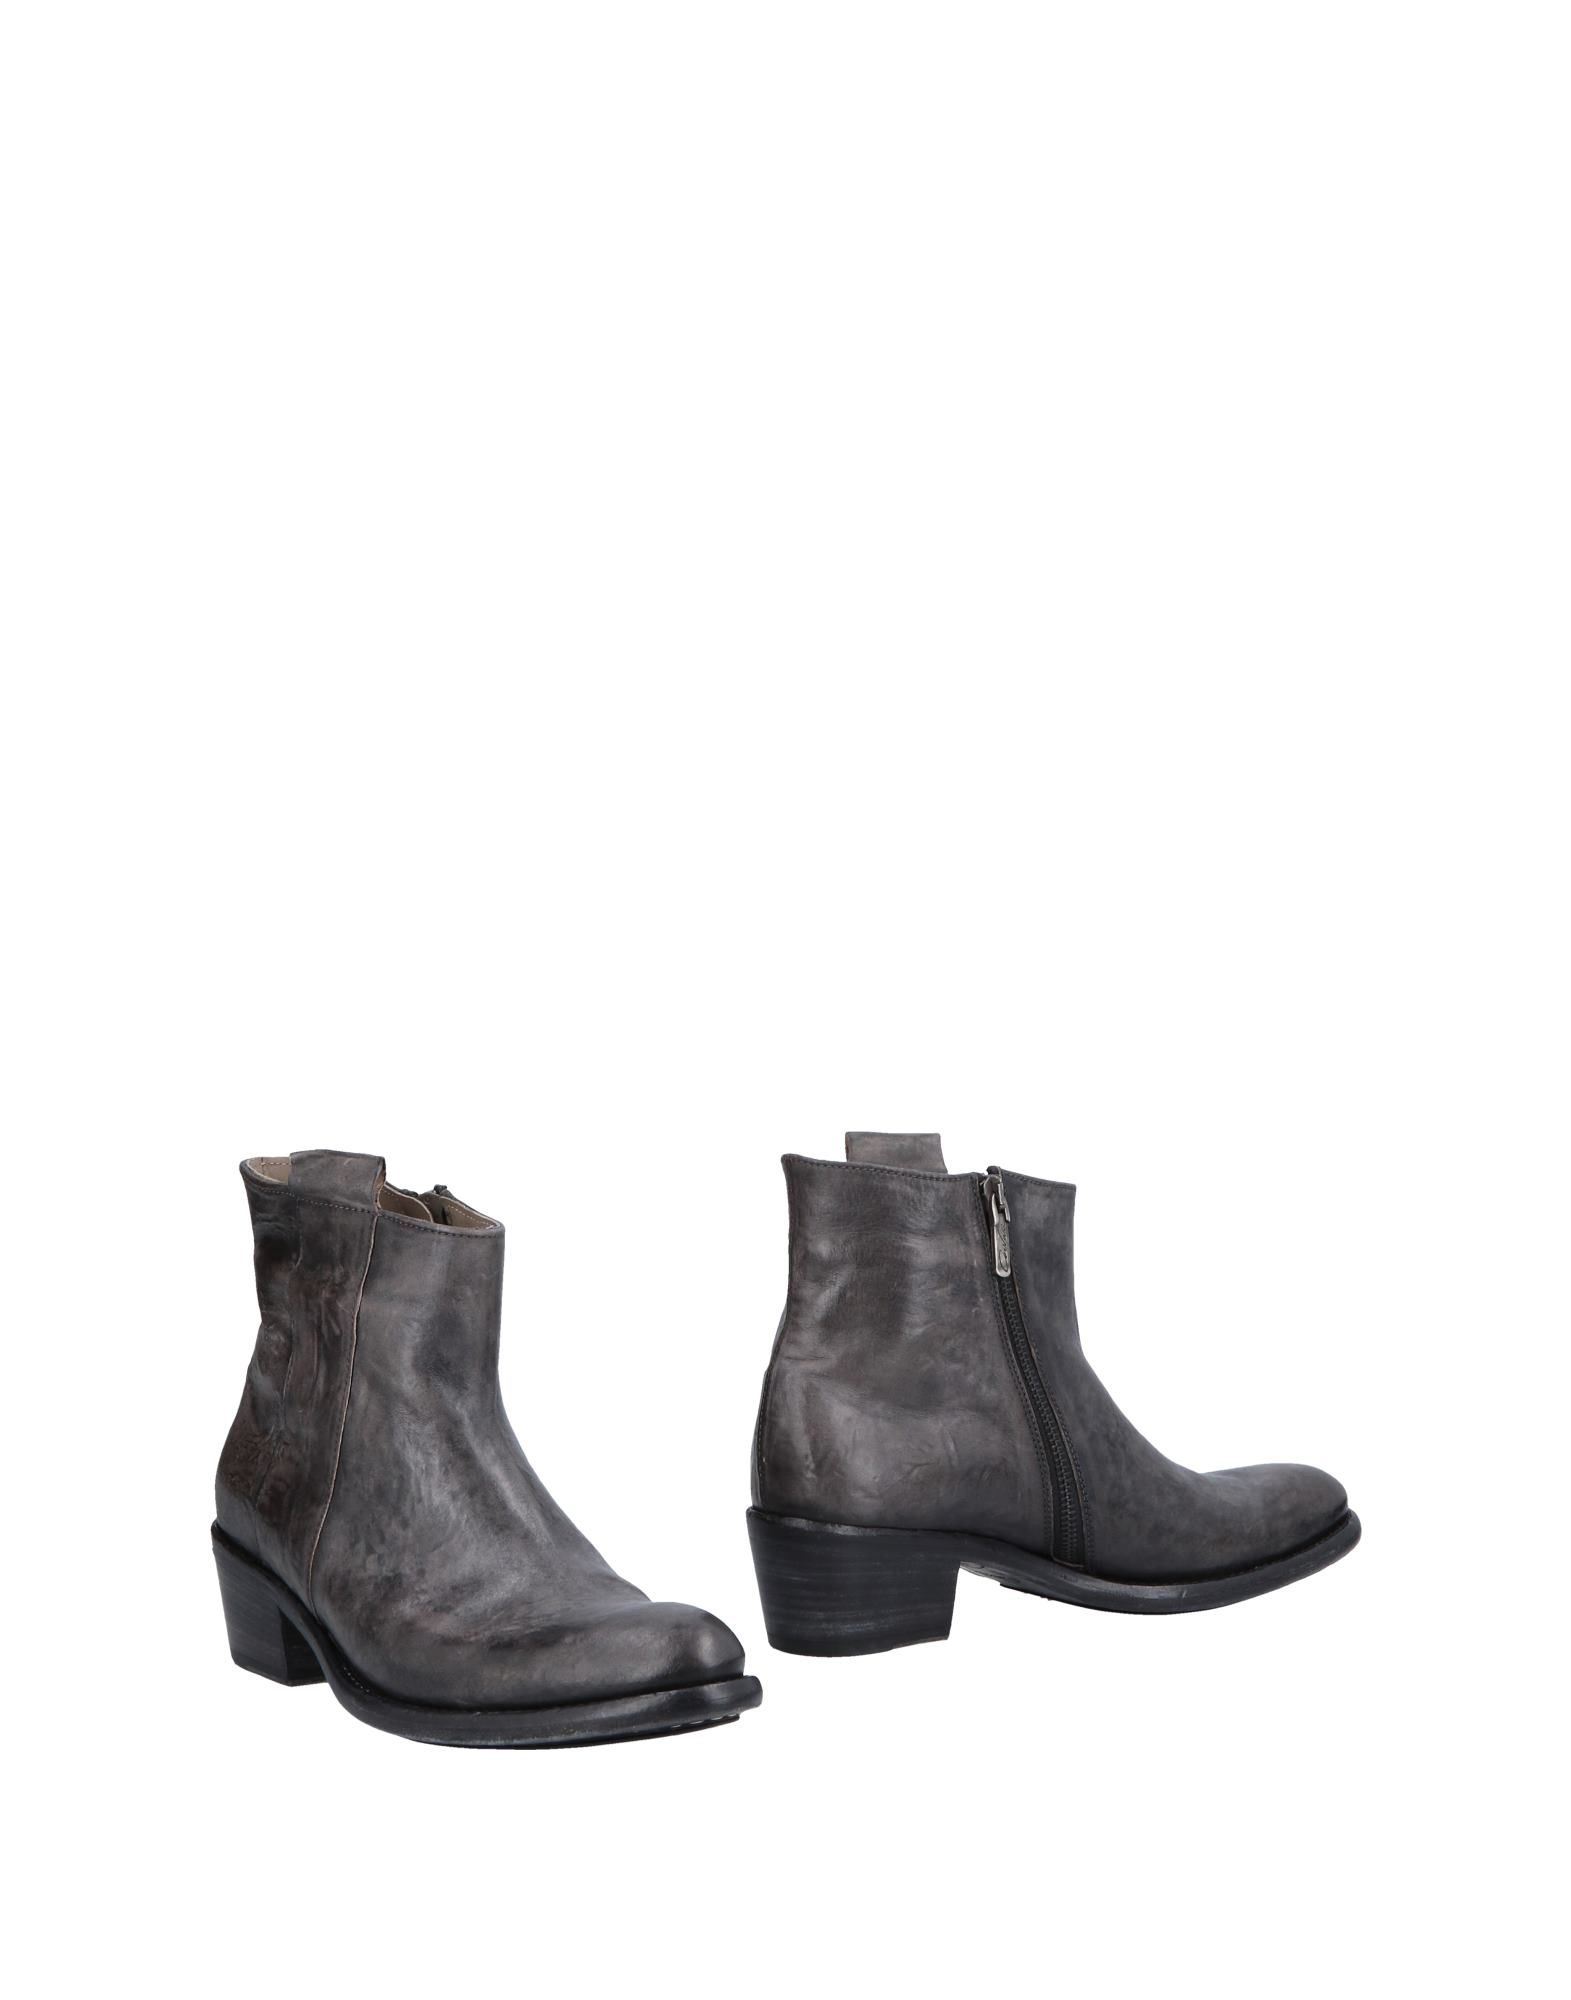 CORVARI Ankle Boot in Lead